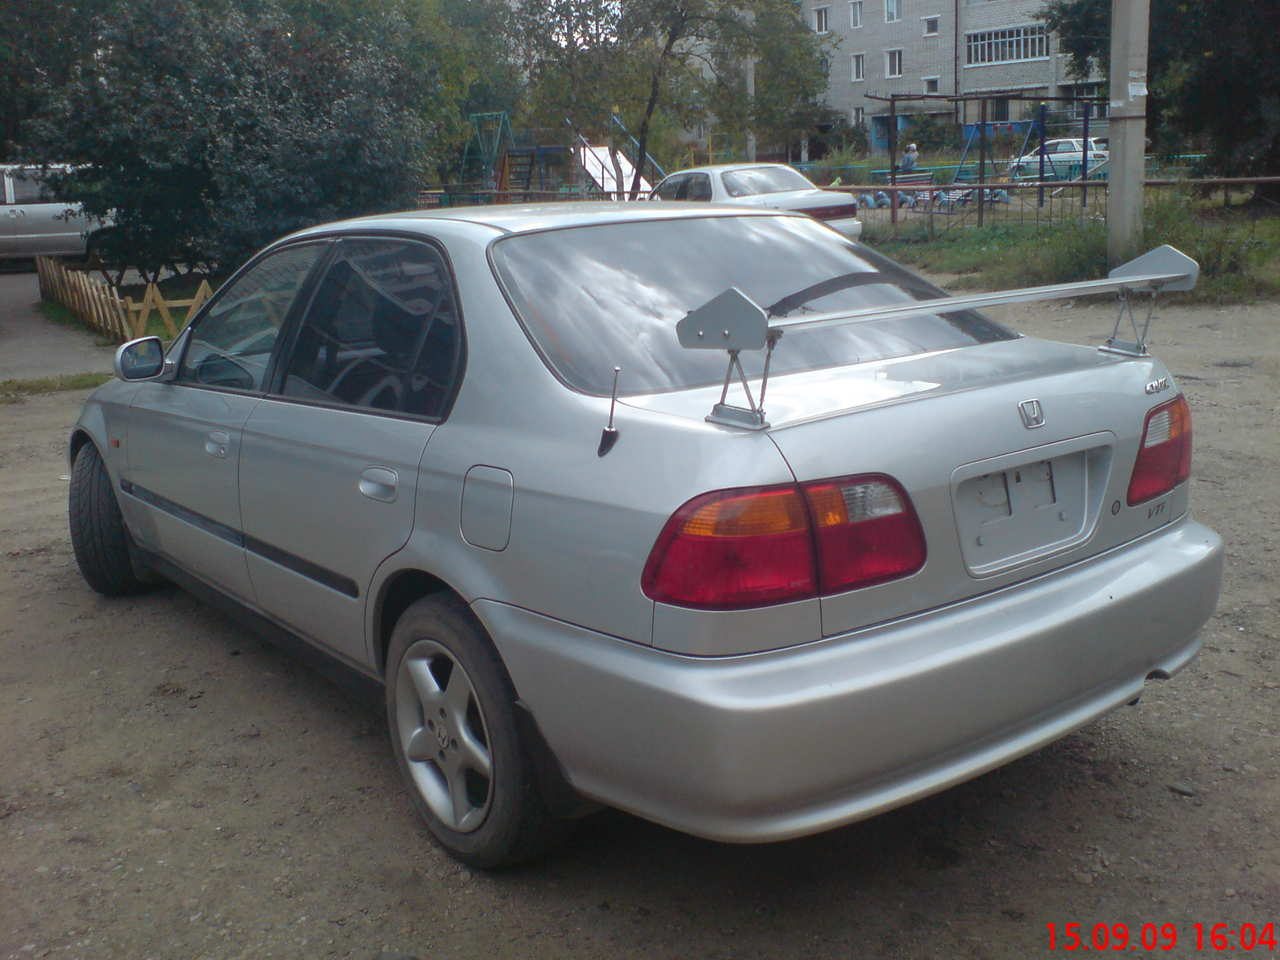 1999 Honda Civic Pictures, 1.5l., Gasoline, FF, Manual For Sale